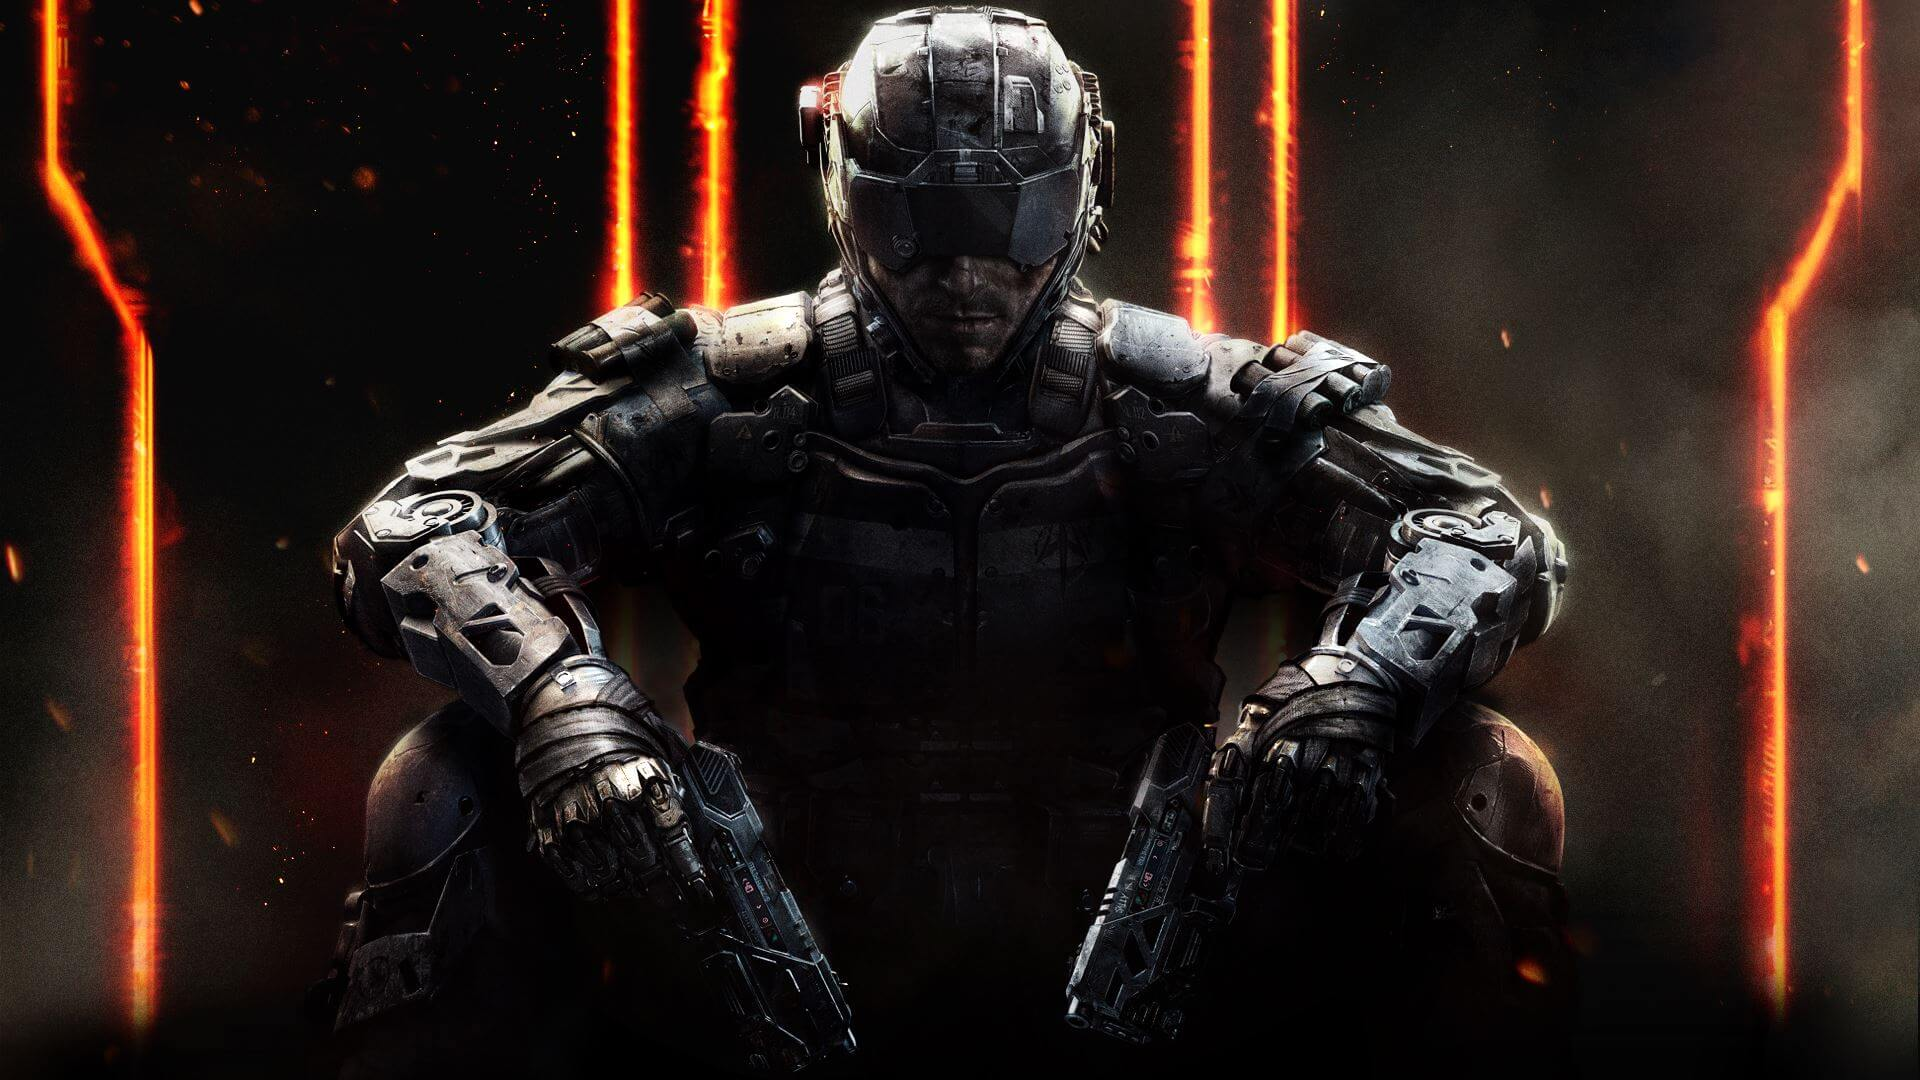 Call of Duty: Black Ops 3 Missing Campaign for PS3 & 360